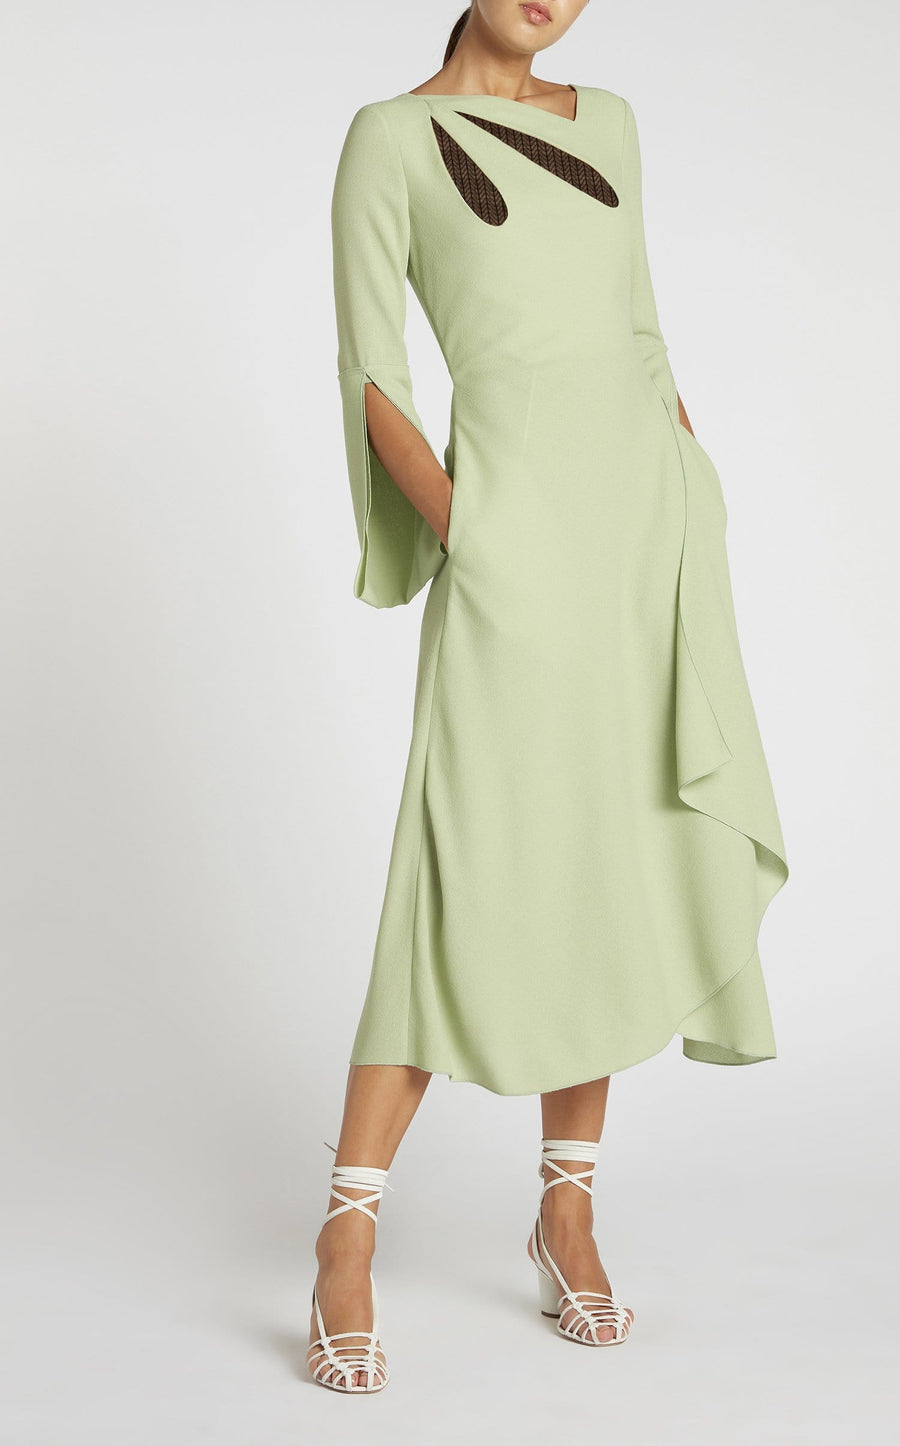 Oreti Dress In Pale Green/Black from Roland Mouret